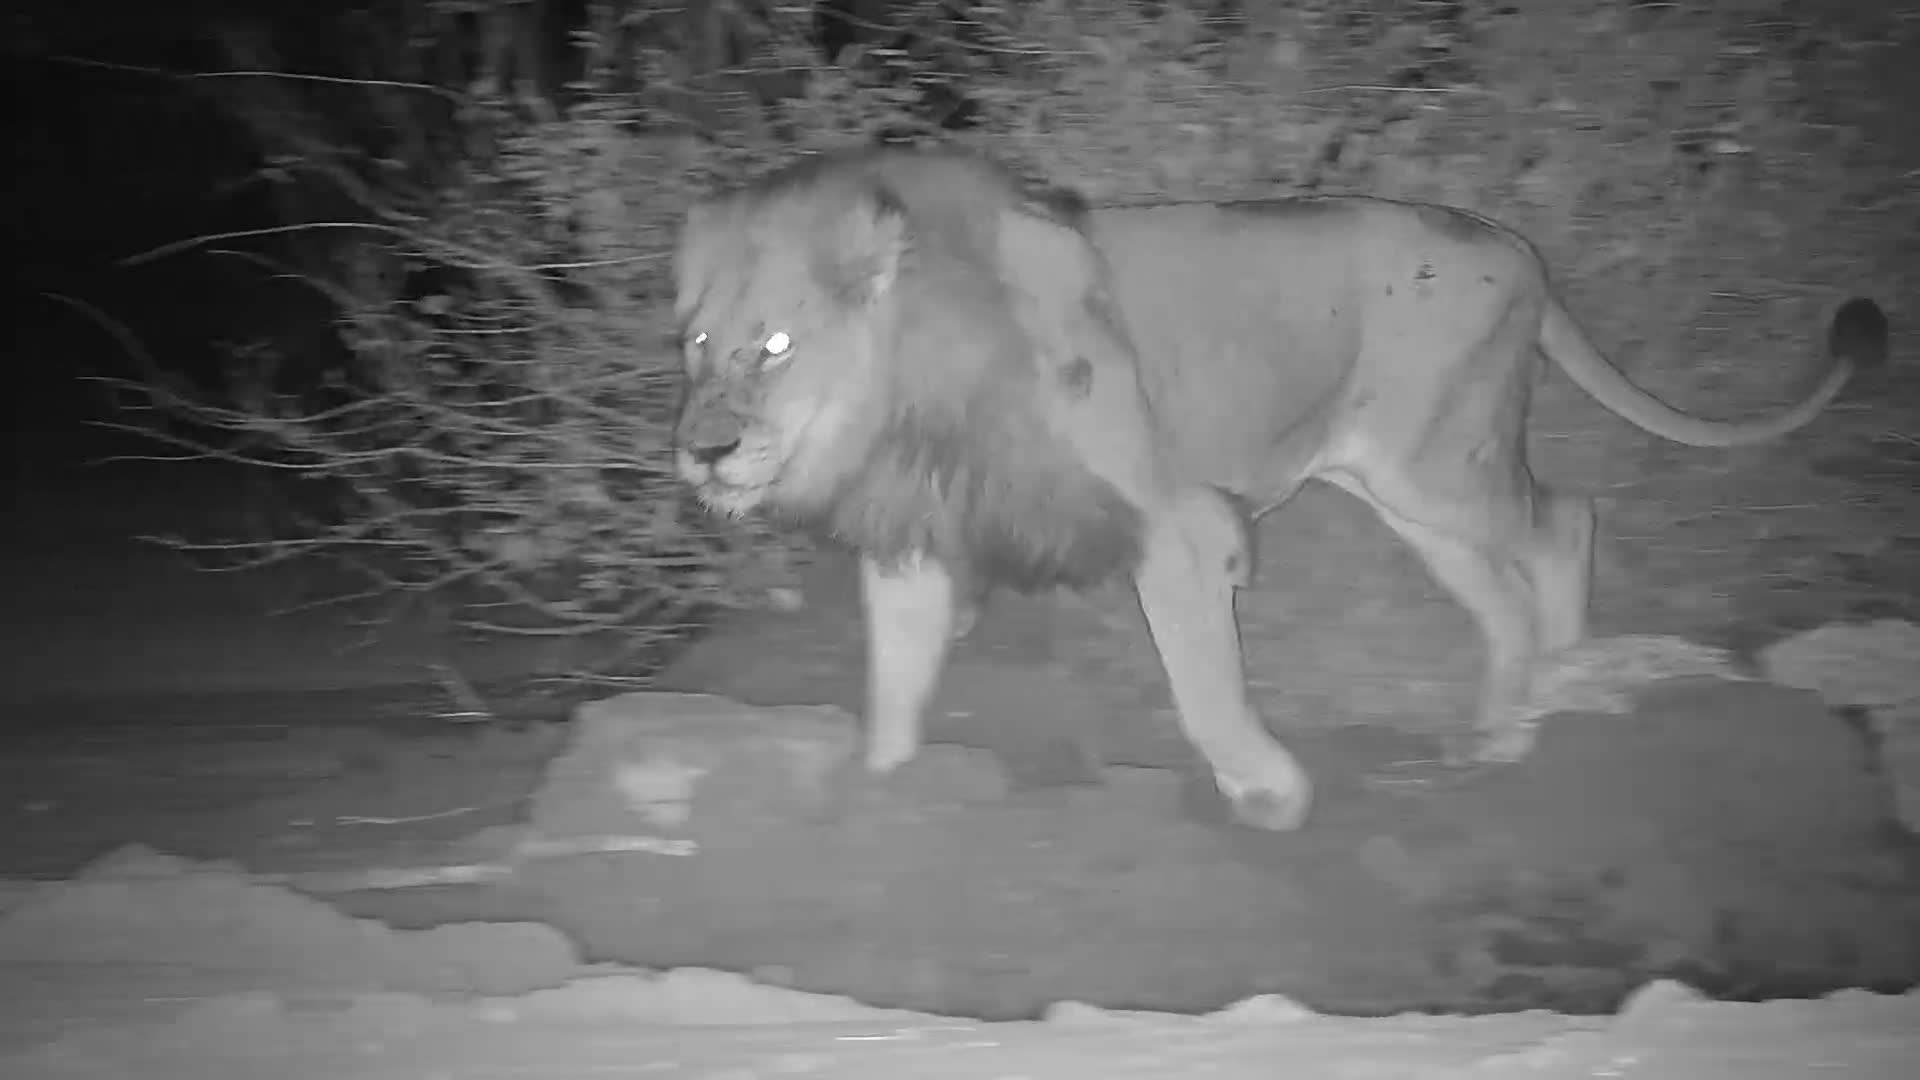 VIDEO: Another beautiful Male Lion at pan